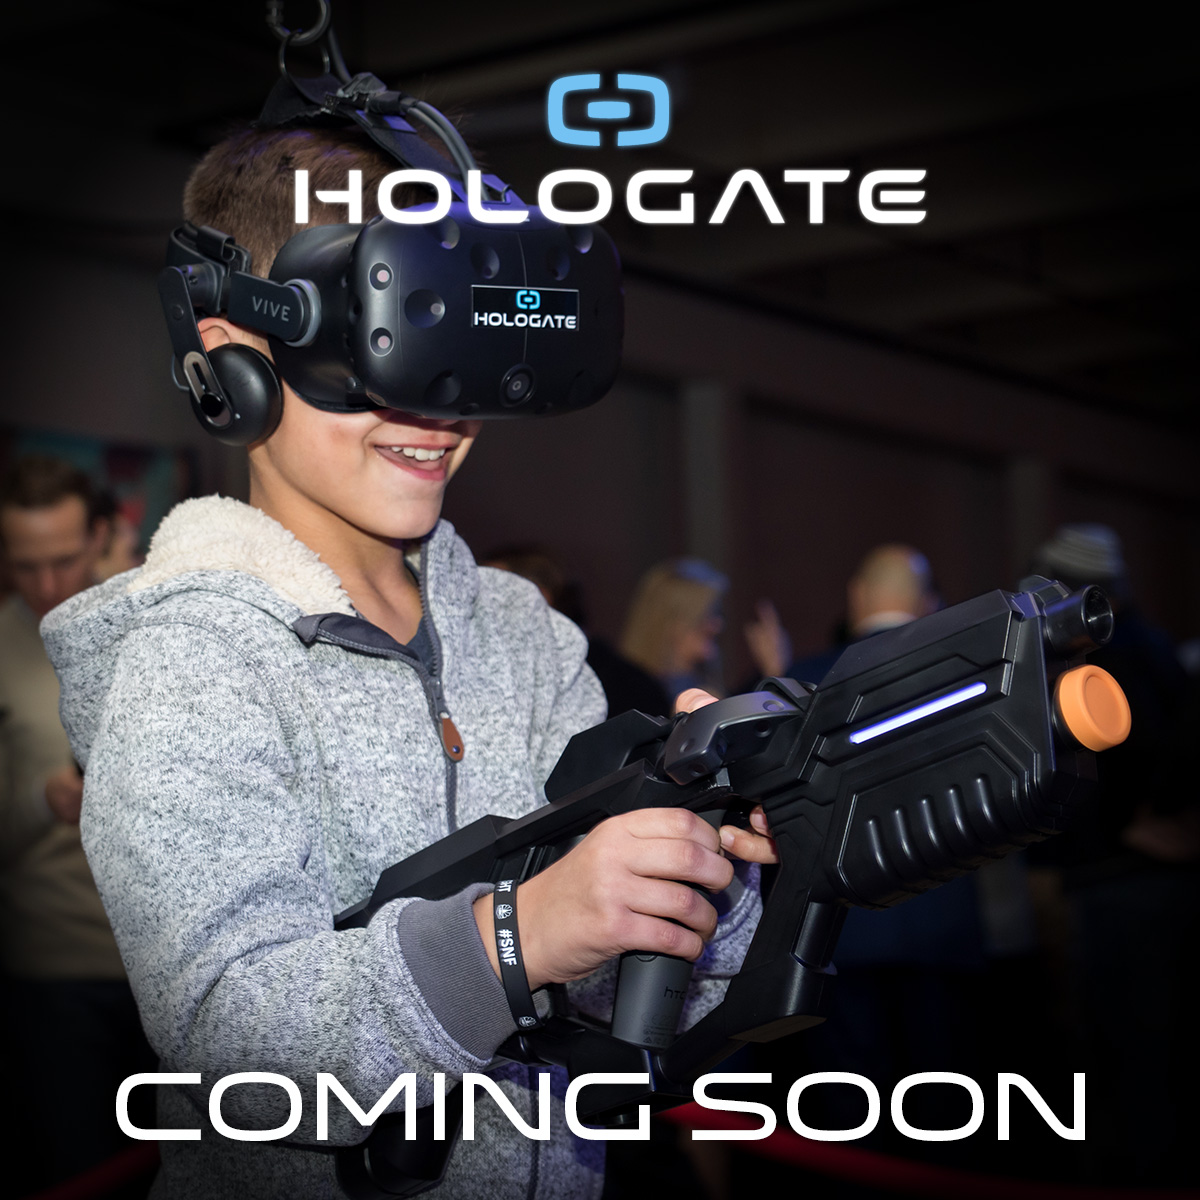 hologate-coming-soon-6